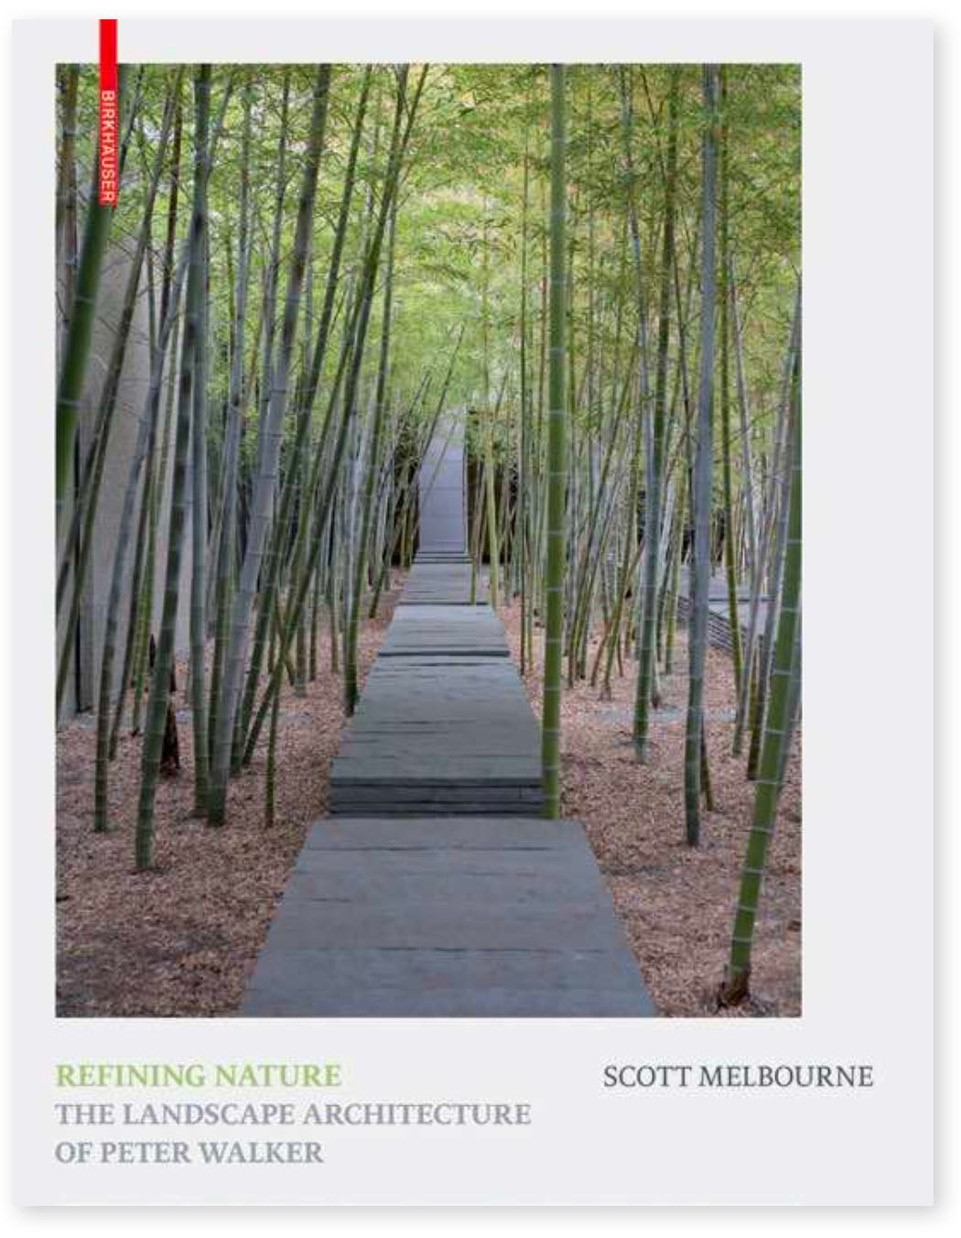 Refining Nature: The Landscape Architecture of Peter Walker